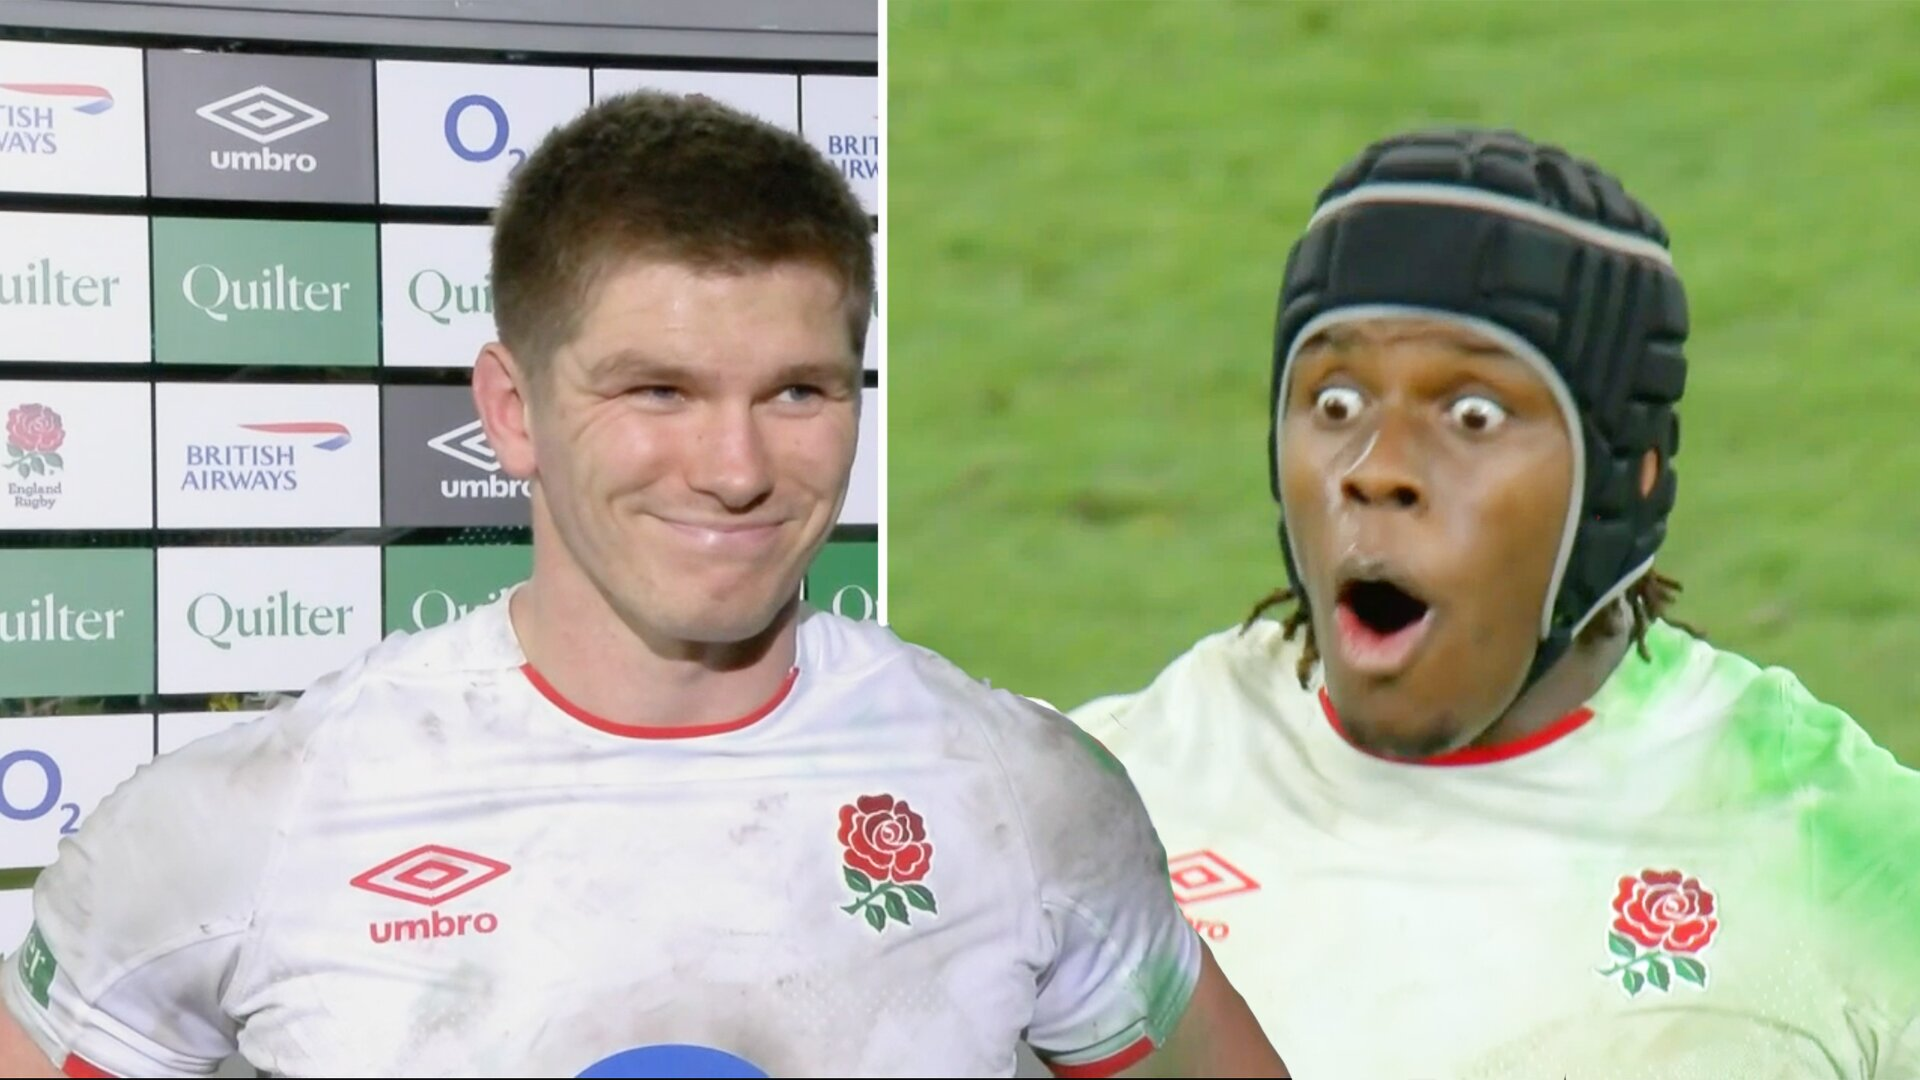 'He's a just a ****ing ****' - fans react to England's dominant win over Ireland